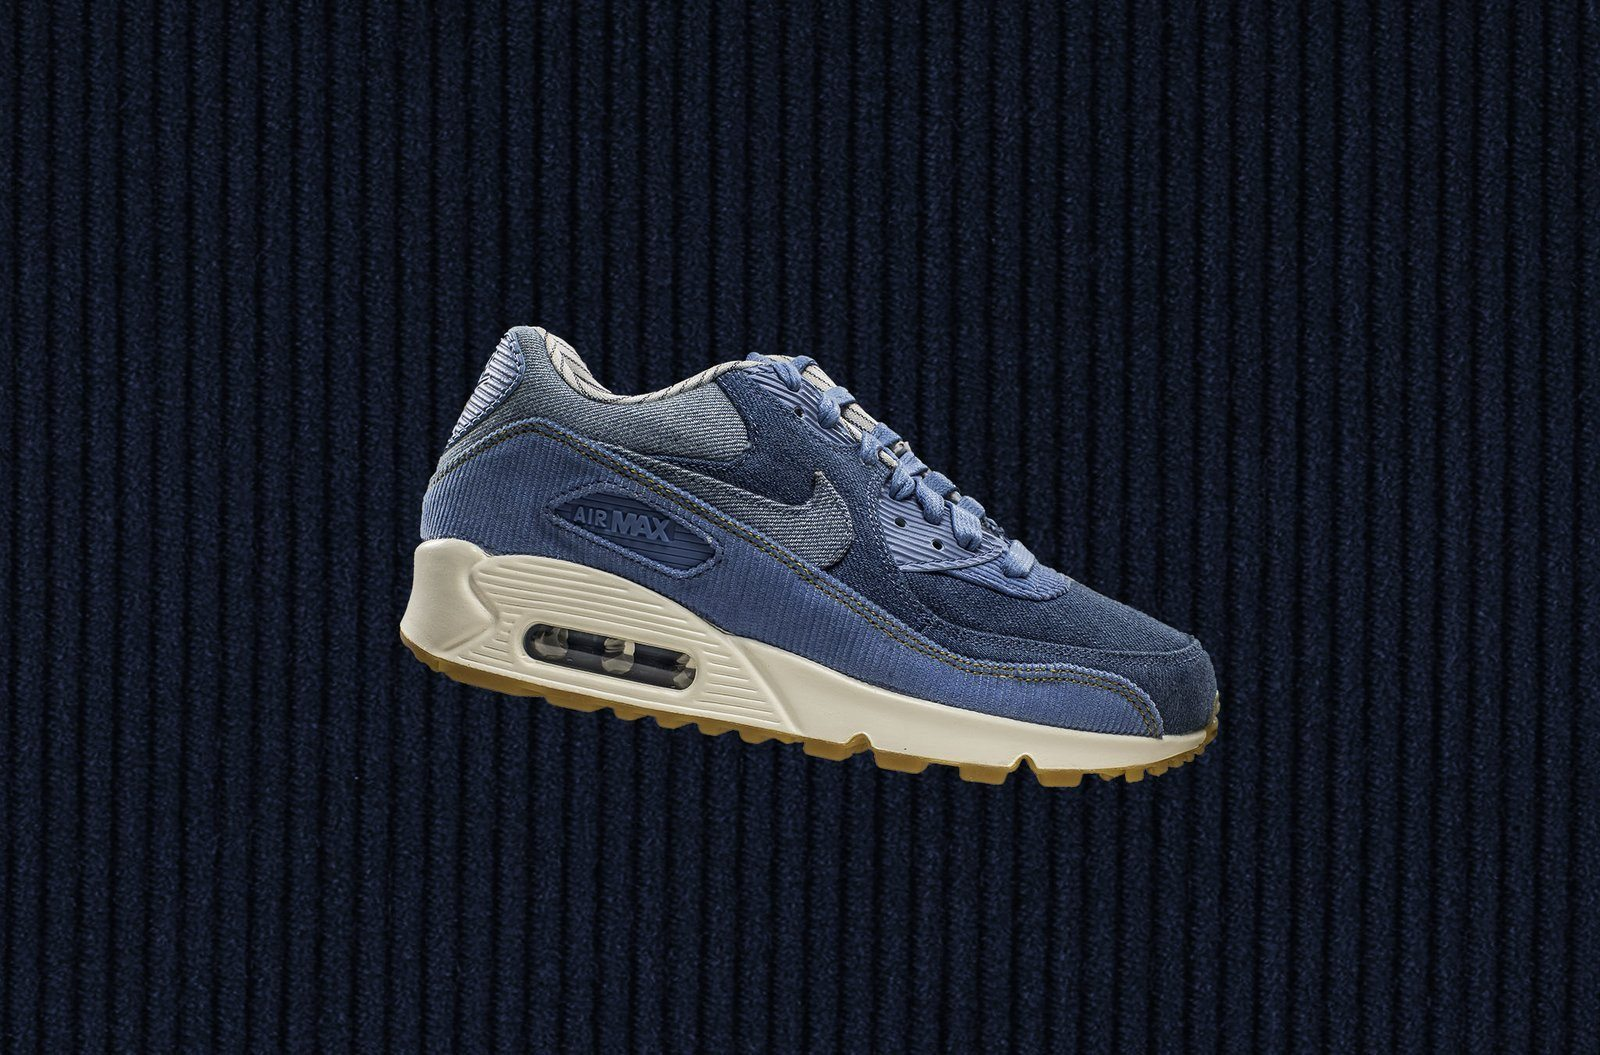 New Nike Air Max 90 Features Denim and Corduroy Construction